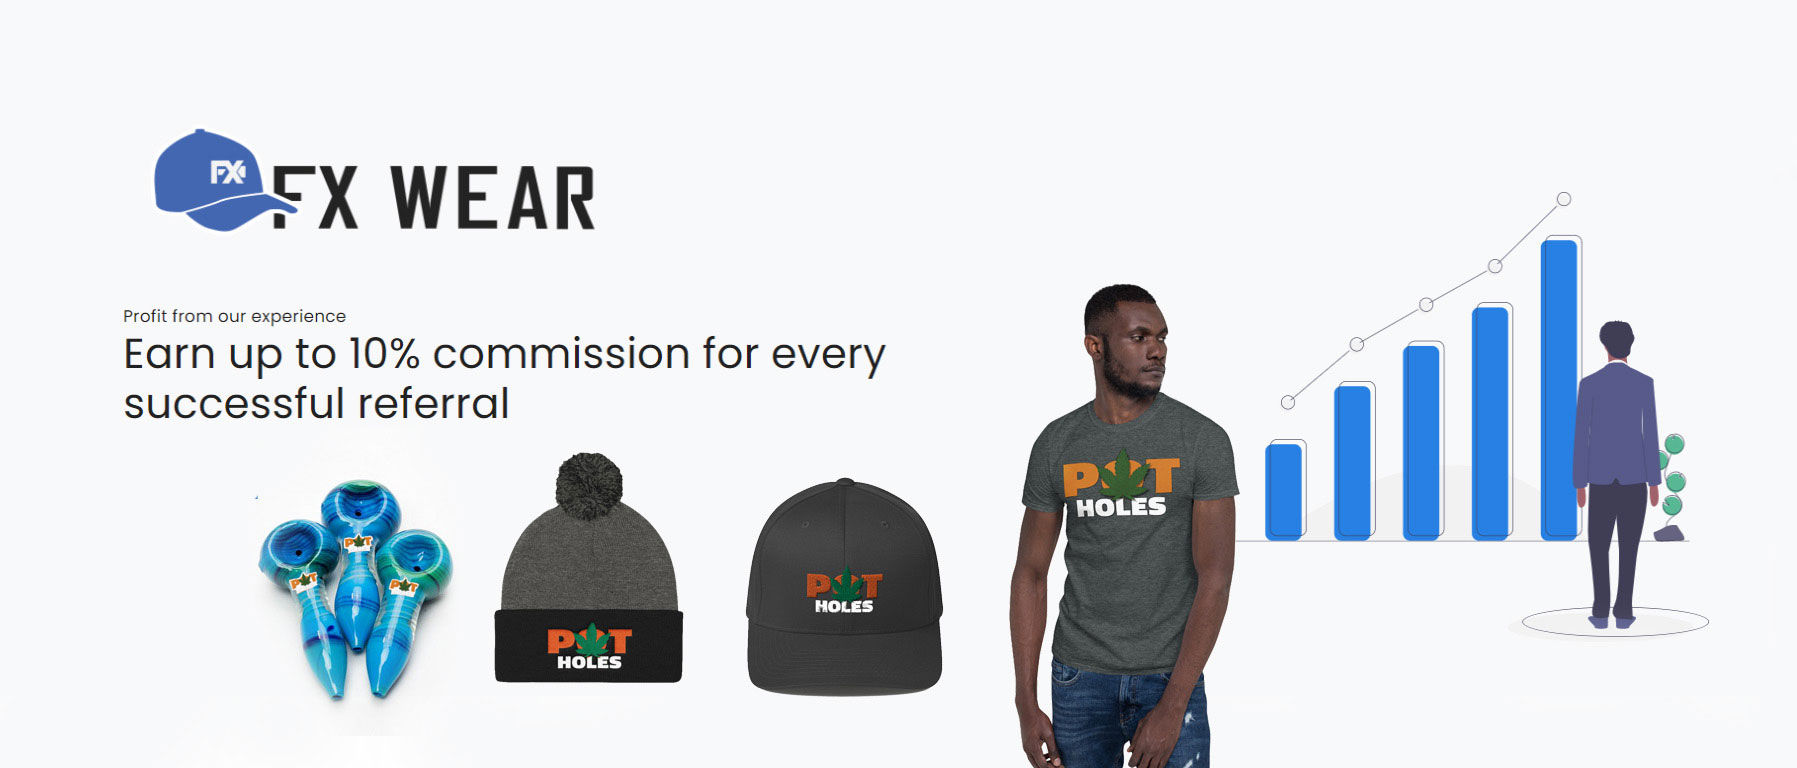 Affiliate Image, click on it to make money selling PotHoles Merchandise and other products from the FX-Wear store.